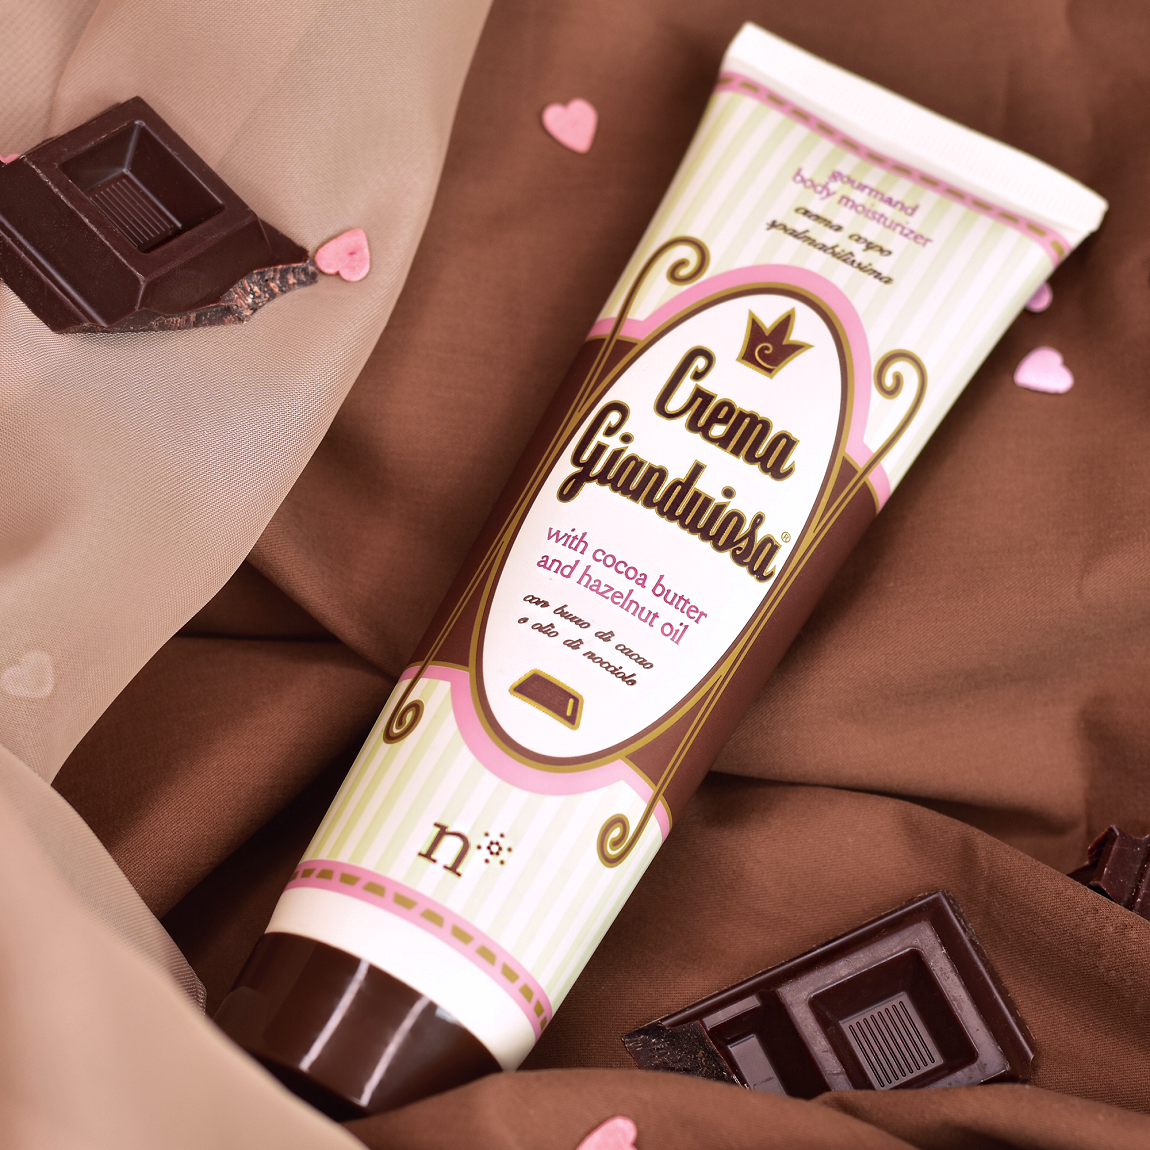 Gianduiosa cream, the moisturizer with cocoa butter for who loves chocolate!